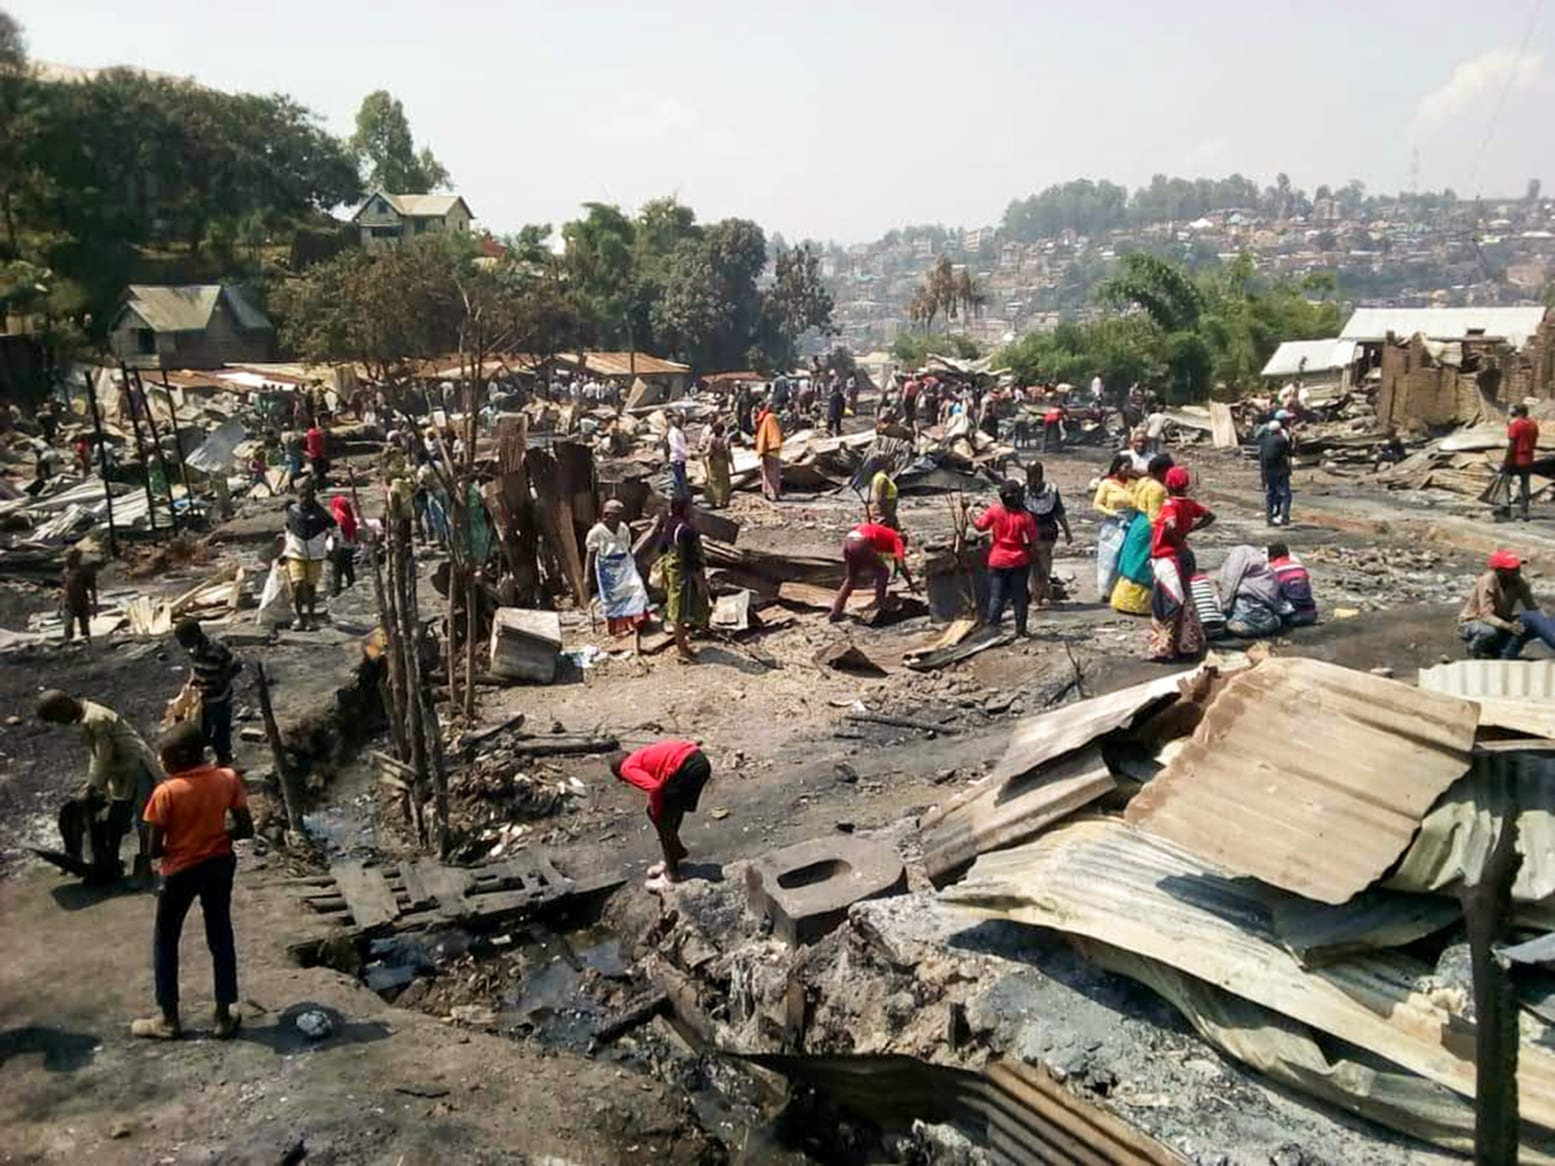 DRCONGO-ACCIDENT-FIRE